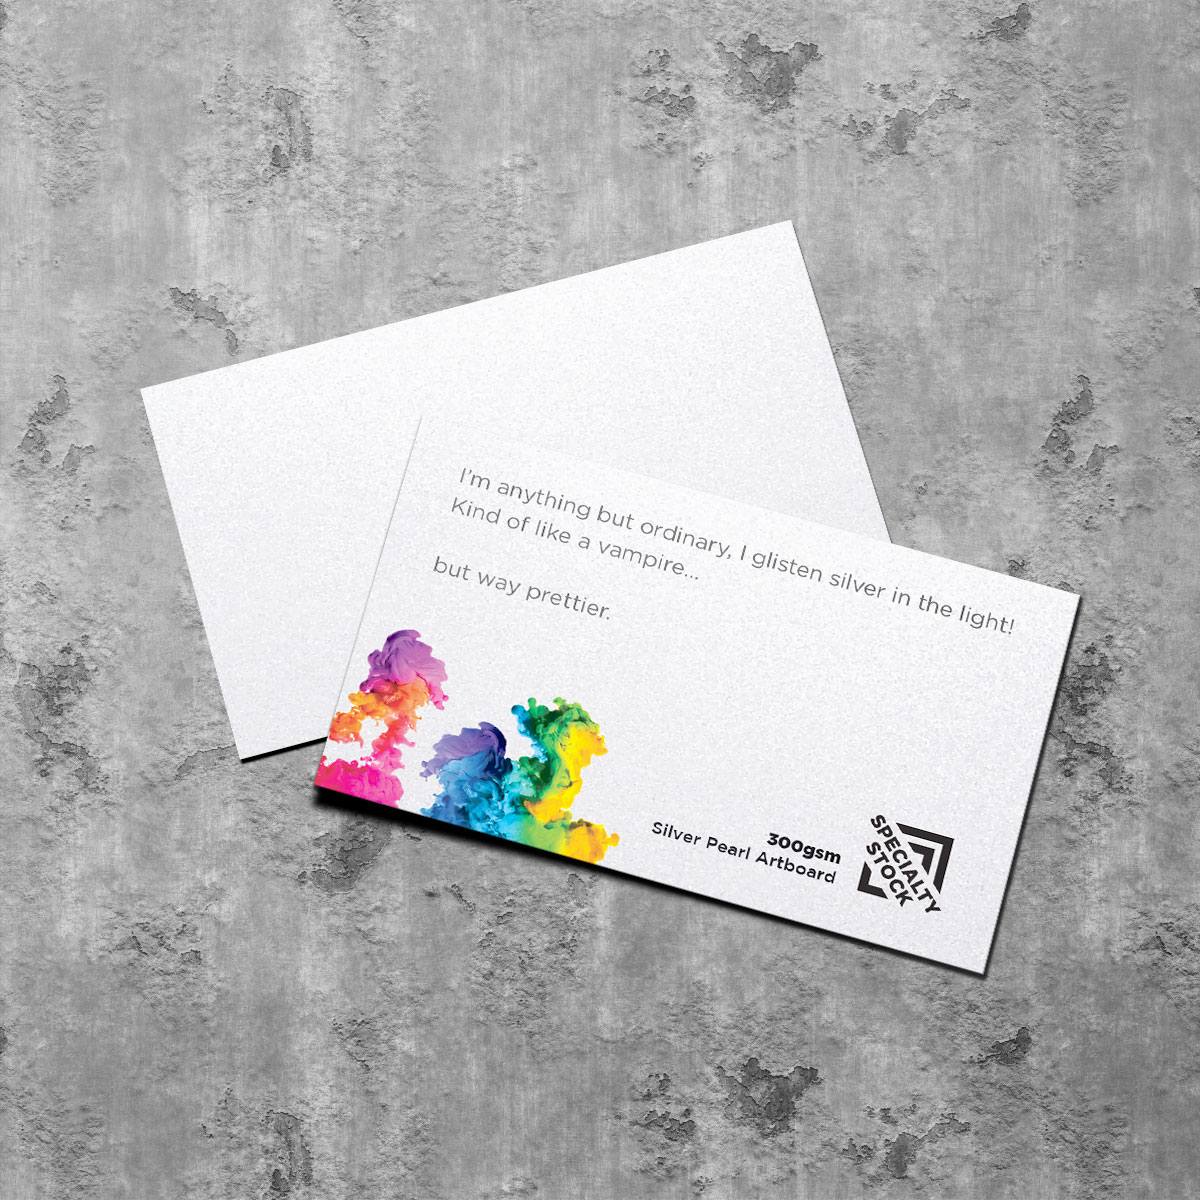 300gsm Silver Pearl Specialty